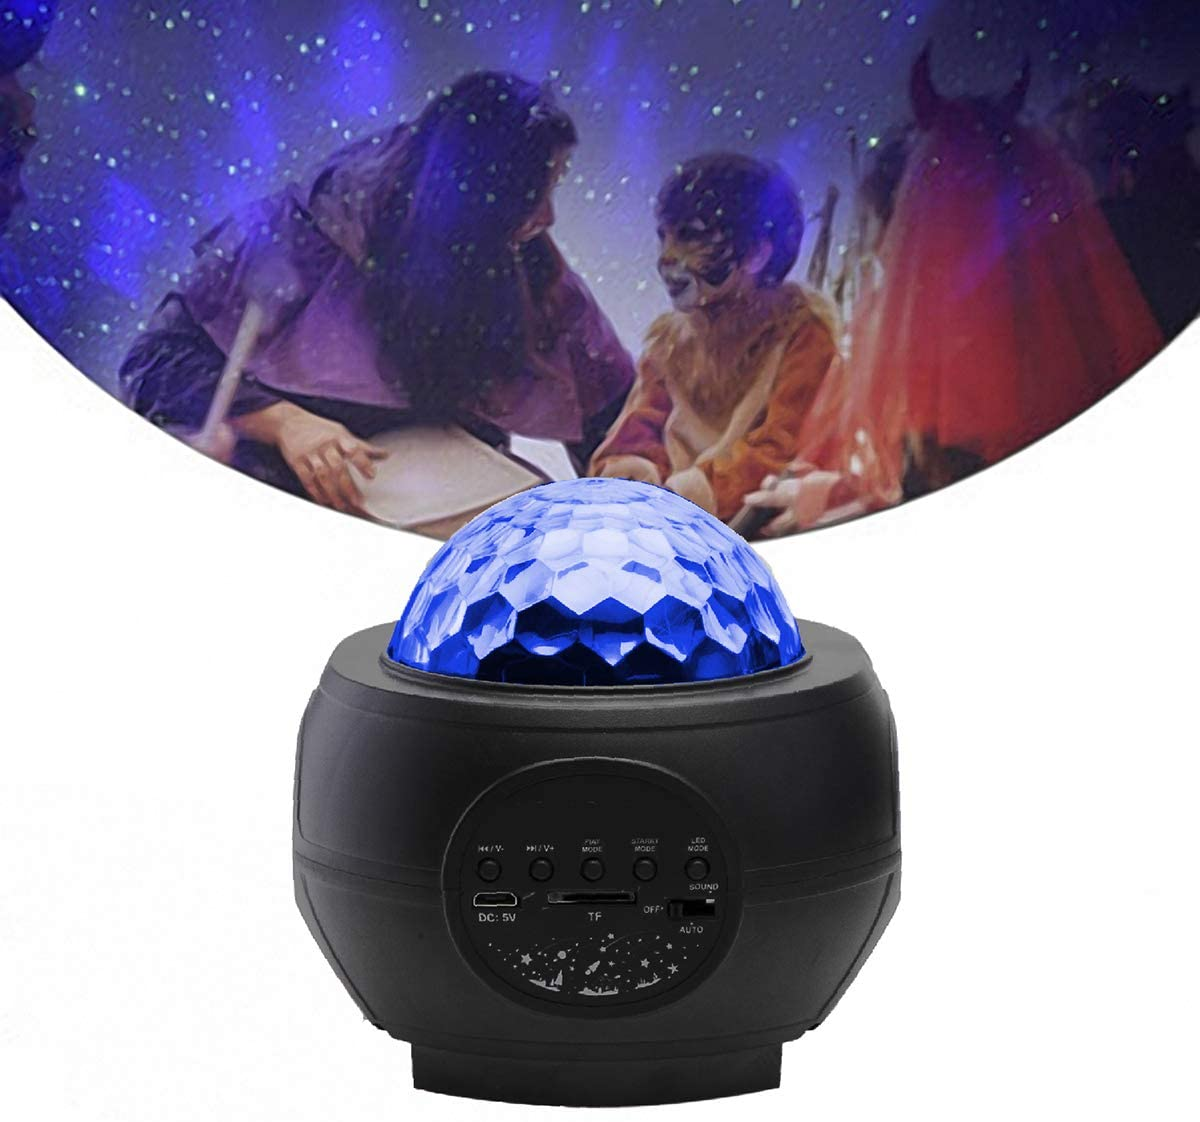 SOONHUA Night Light Projector, USB Starry Galaxy Water Wave Projector Night Light Wireless Music Player Sound-Activated Projector for Home Party Baby Kids Bedroom